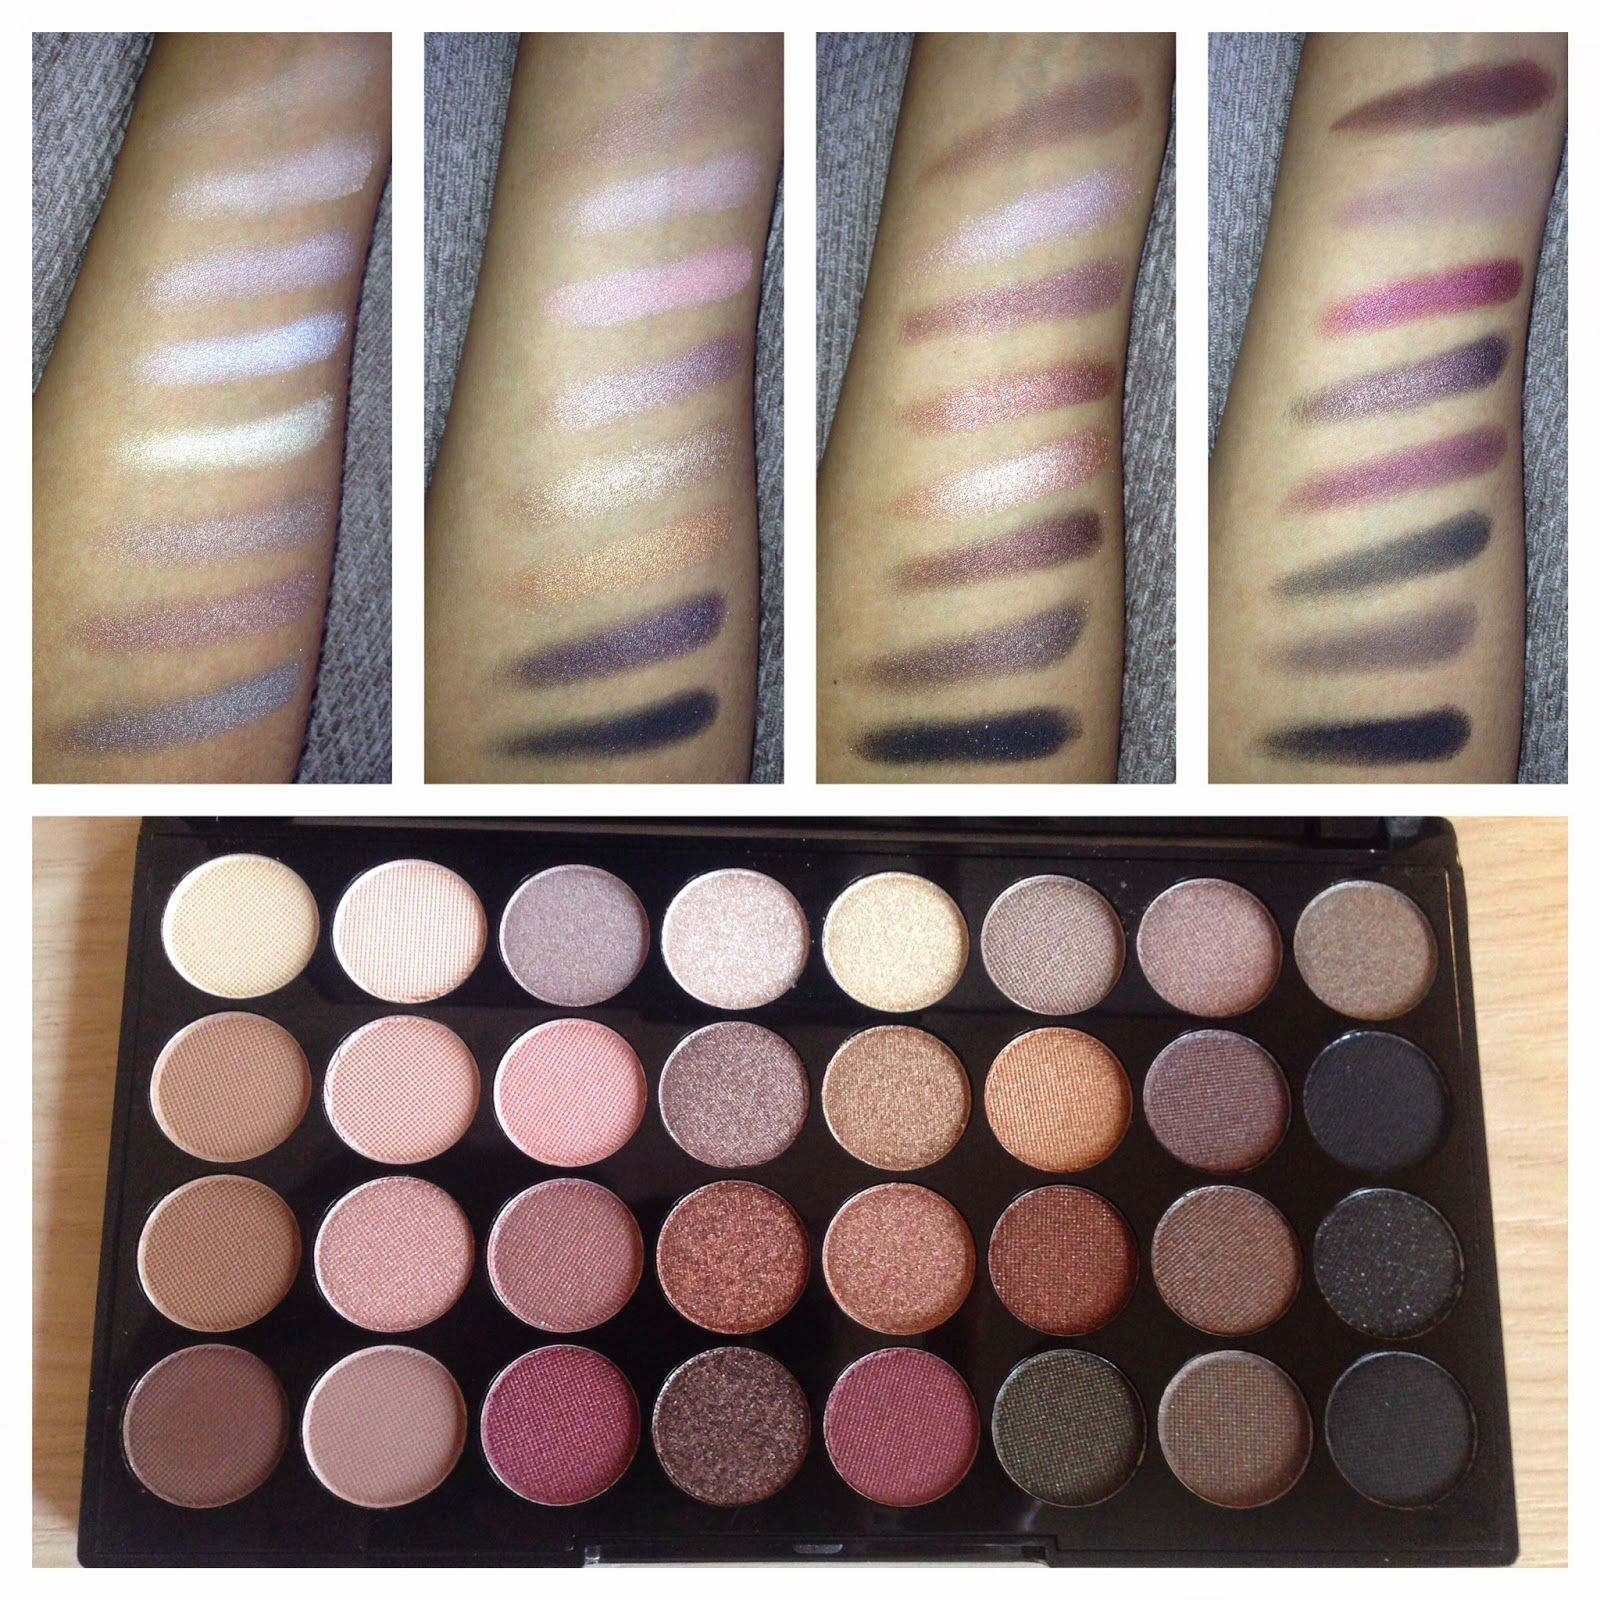 Morphe 35k eyeshadow palette review beauty in bold - Review Swatches Morphe Brushes 35t Eyeshadow Palette Makeup Eyeshadow Pinterest Morphe Eyeshadow And Swatch